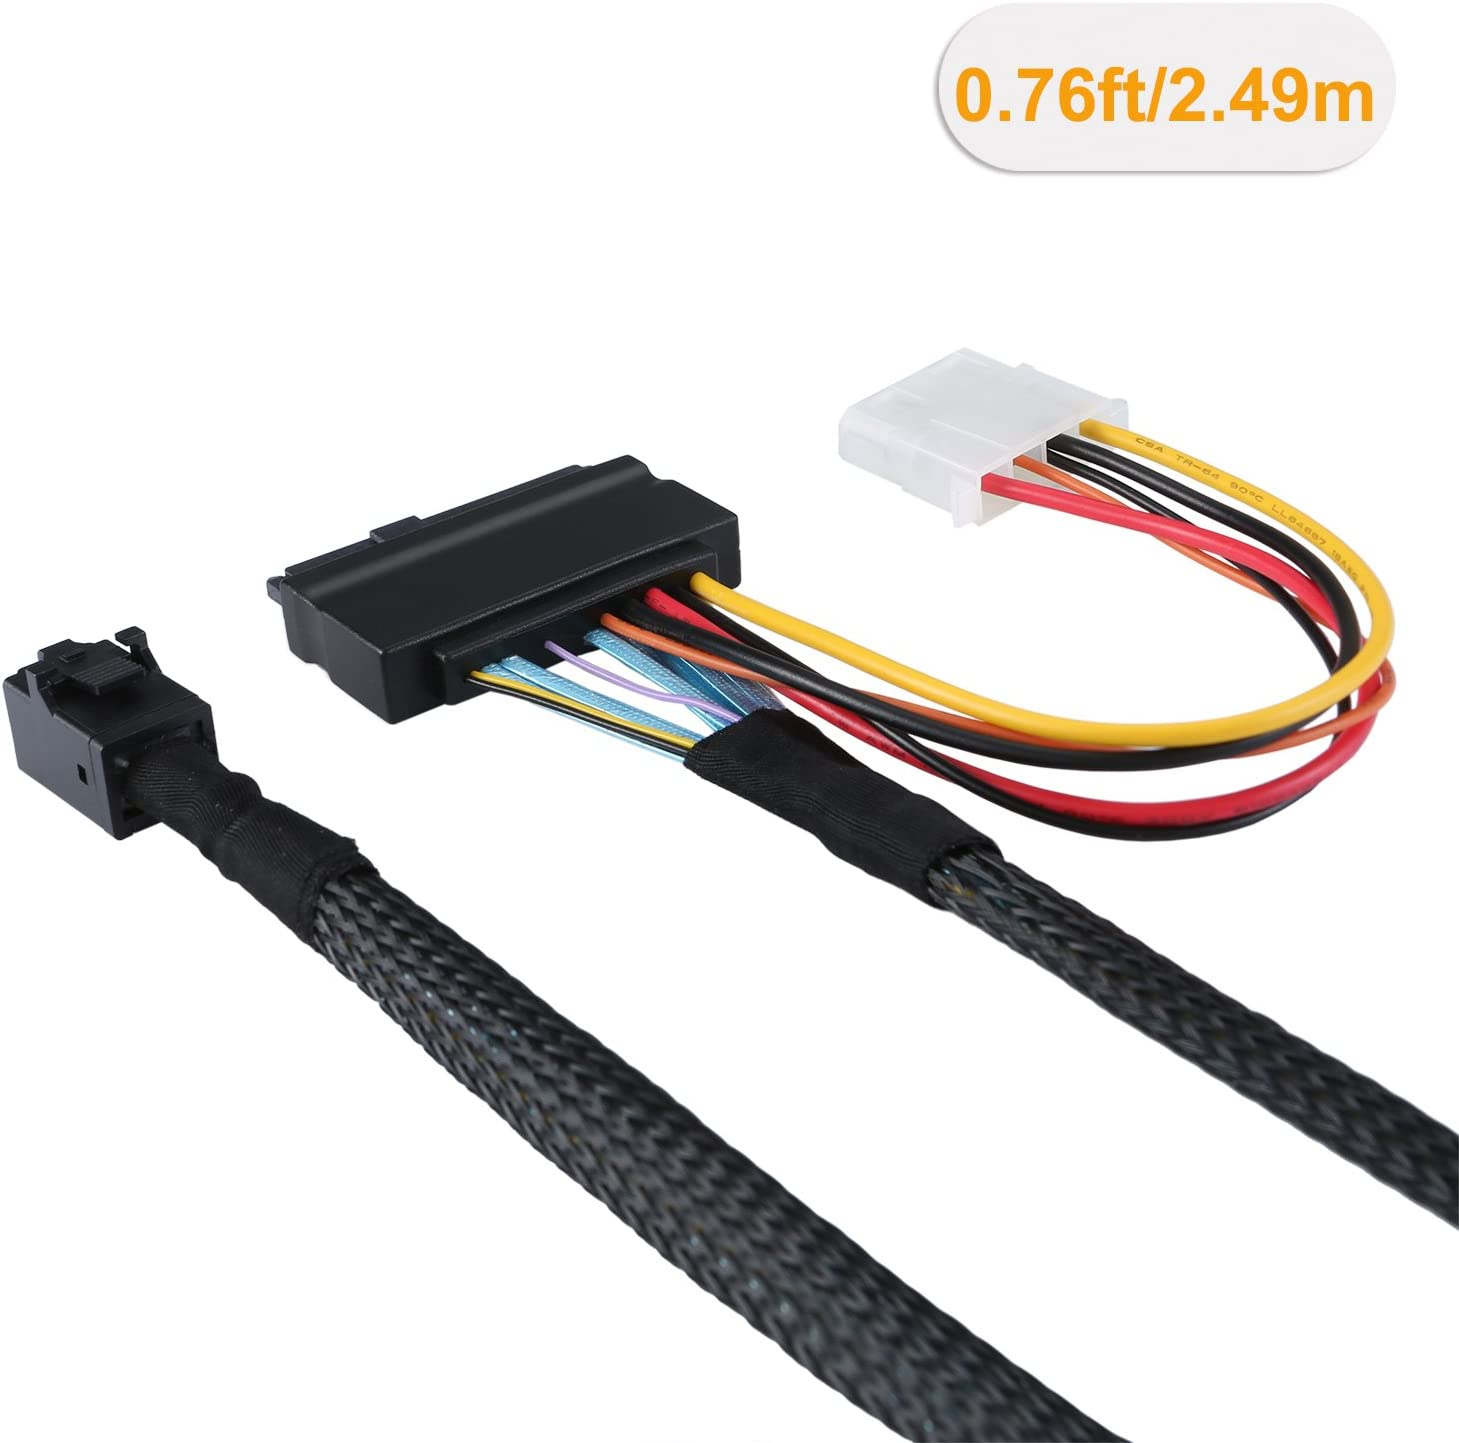 CableCreation 2.5FT Mini SAS HD Cable Internal Mini SAS SFF 8643 to U.2 SFF 8639 Cable with 4 Pin SATA Power Connector for Workstations,Servers and More